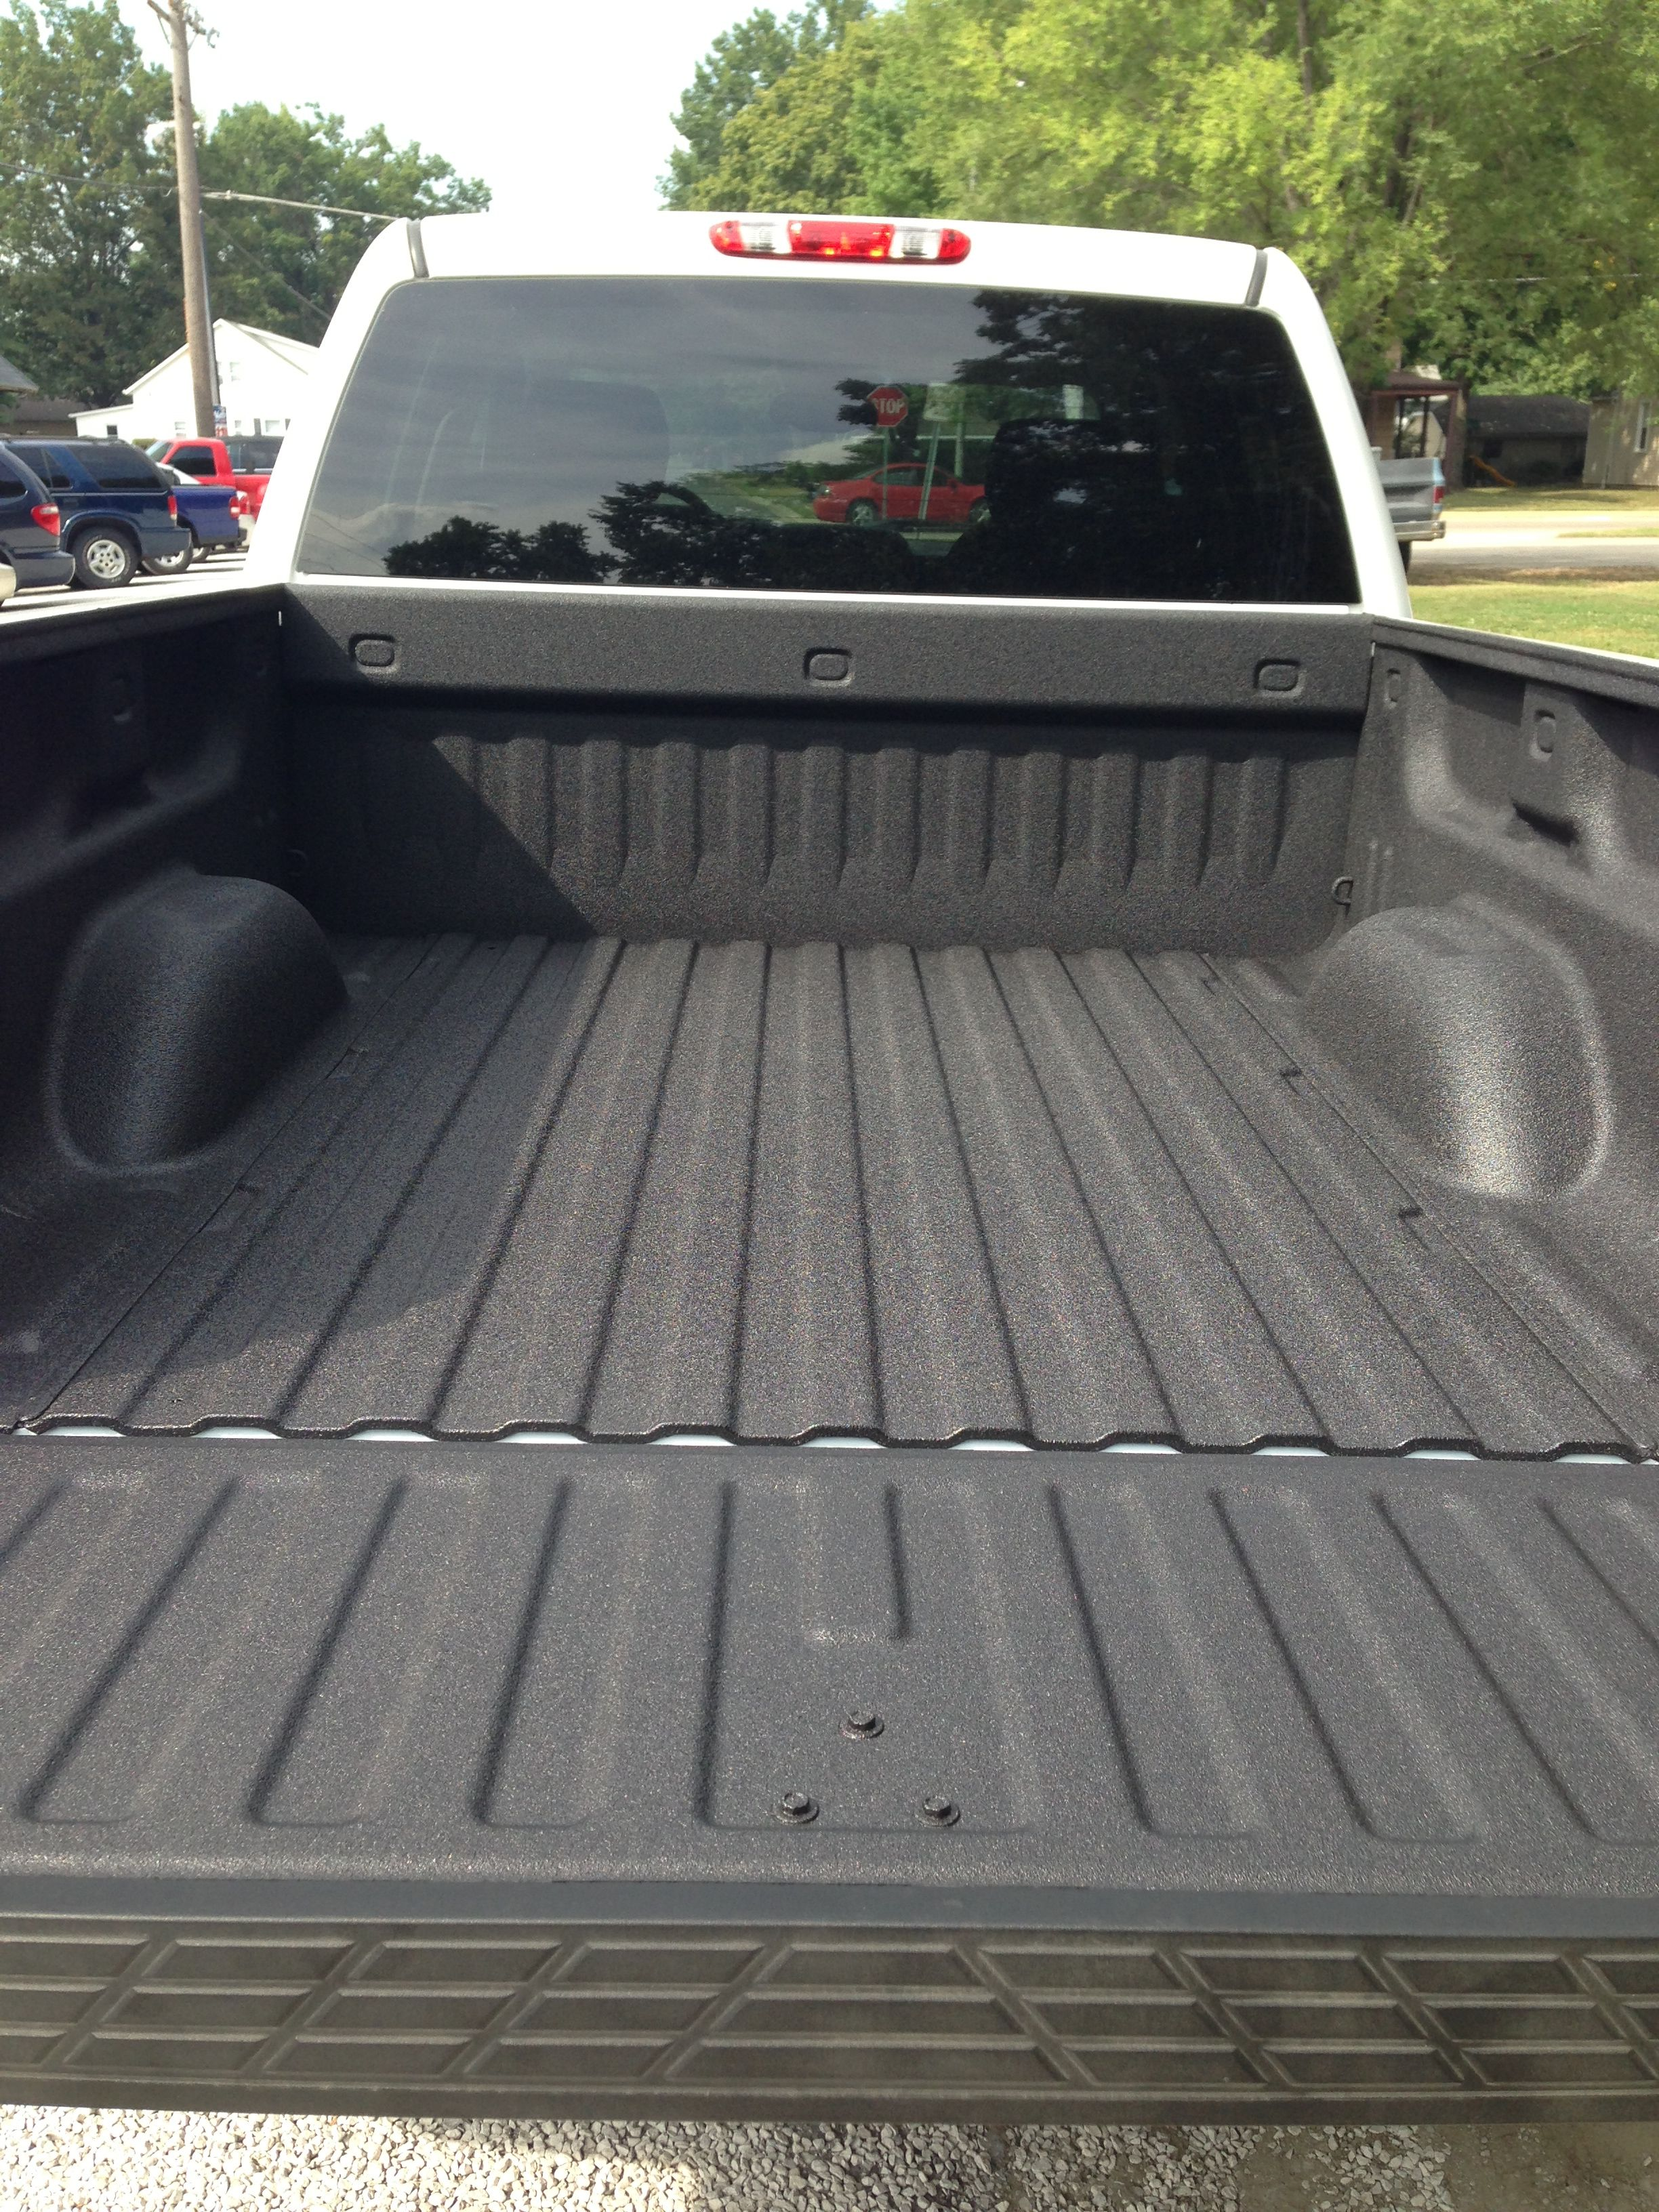 Spray In Bedliner 13 Silverado Spray On Bedliner Truck Bed Liners Bed Liner